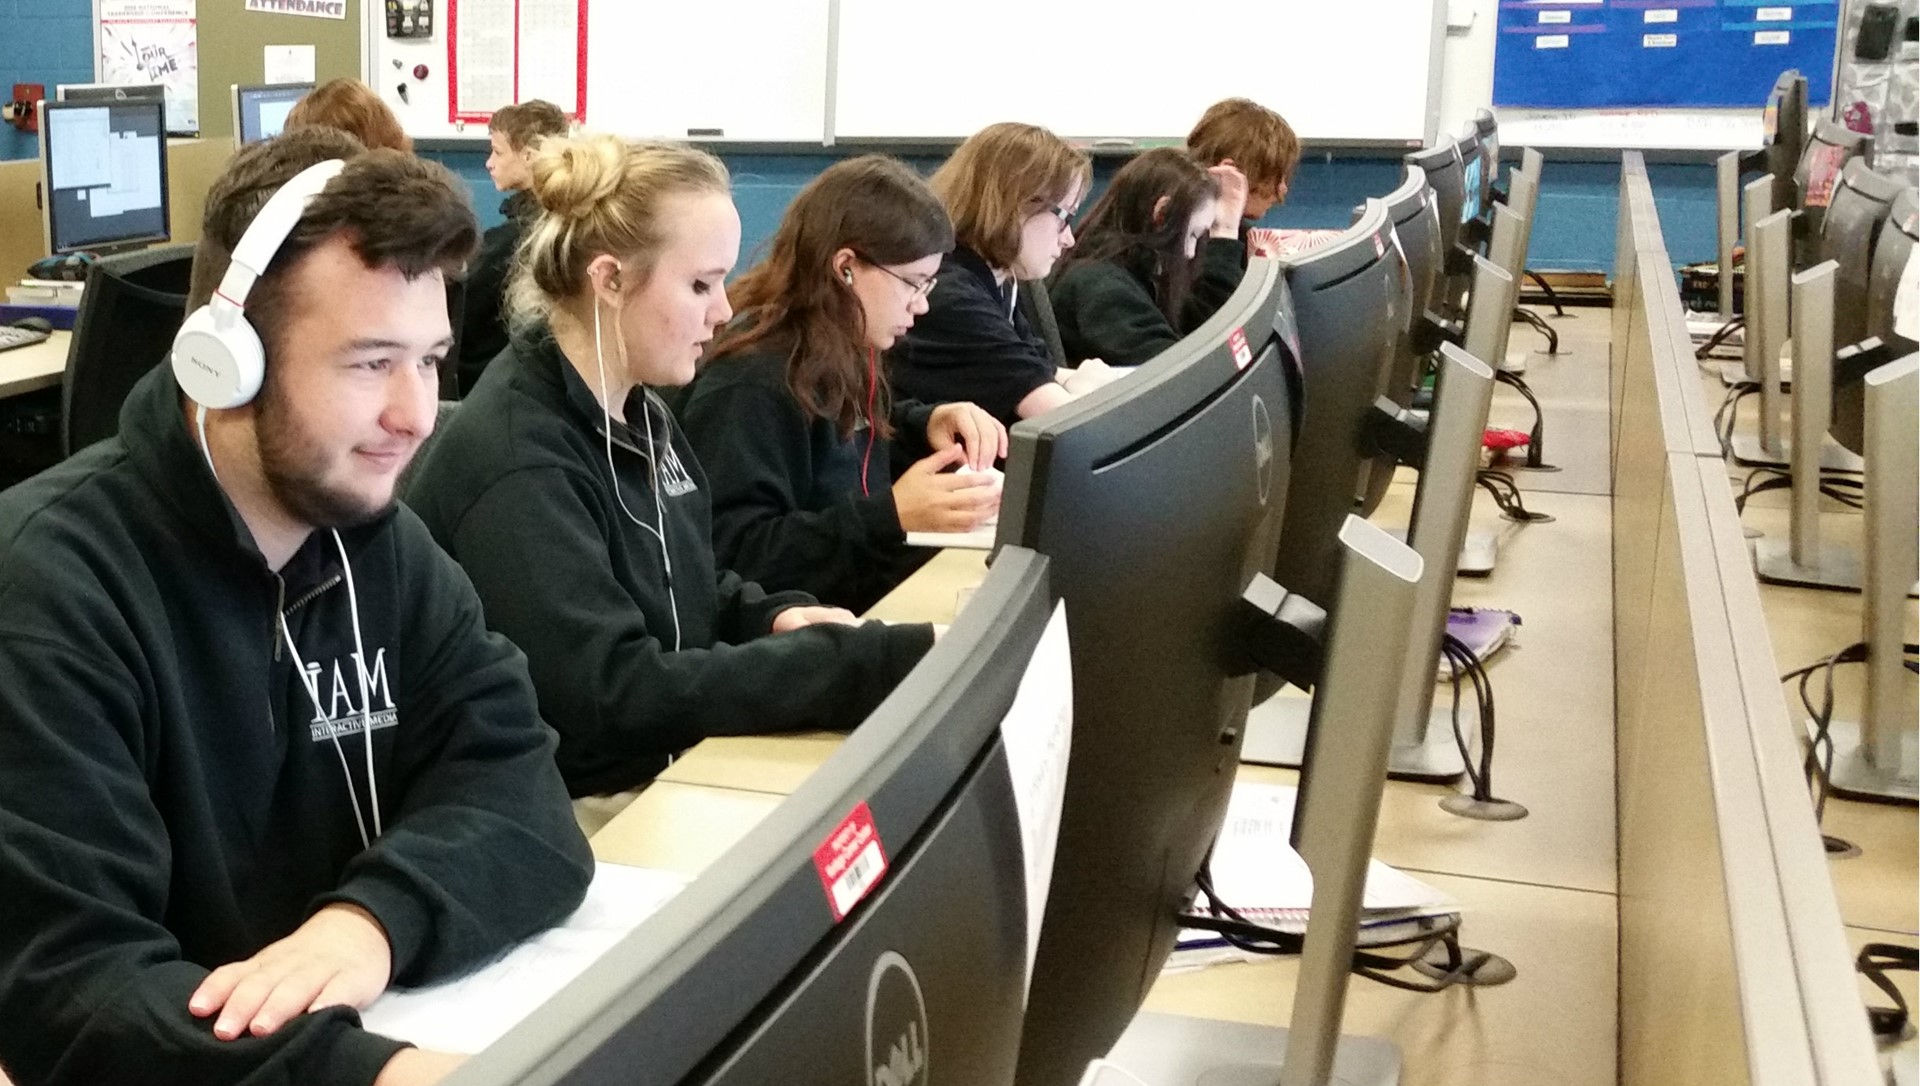 Male and female Interactive Media students sitting in a row at computers